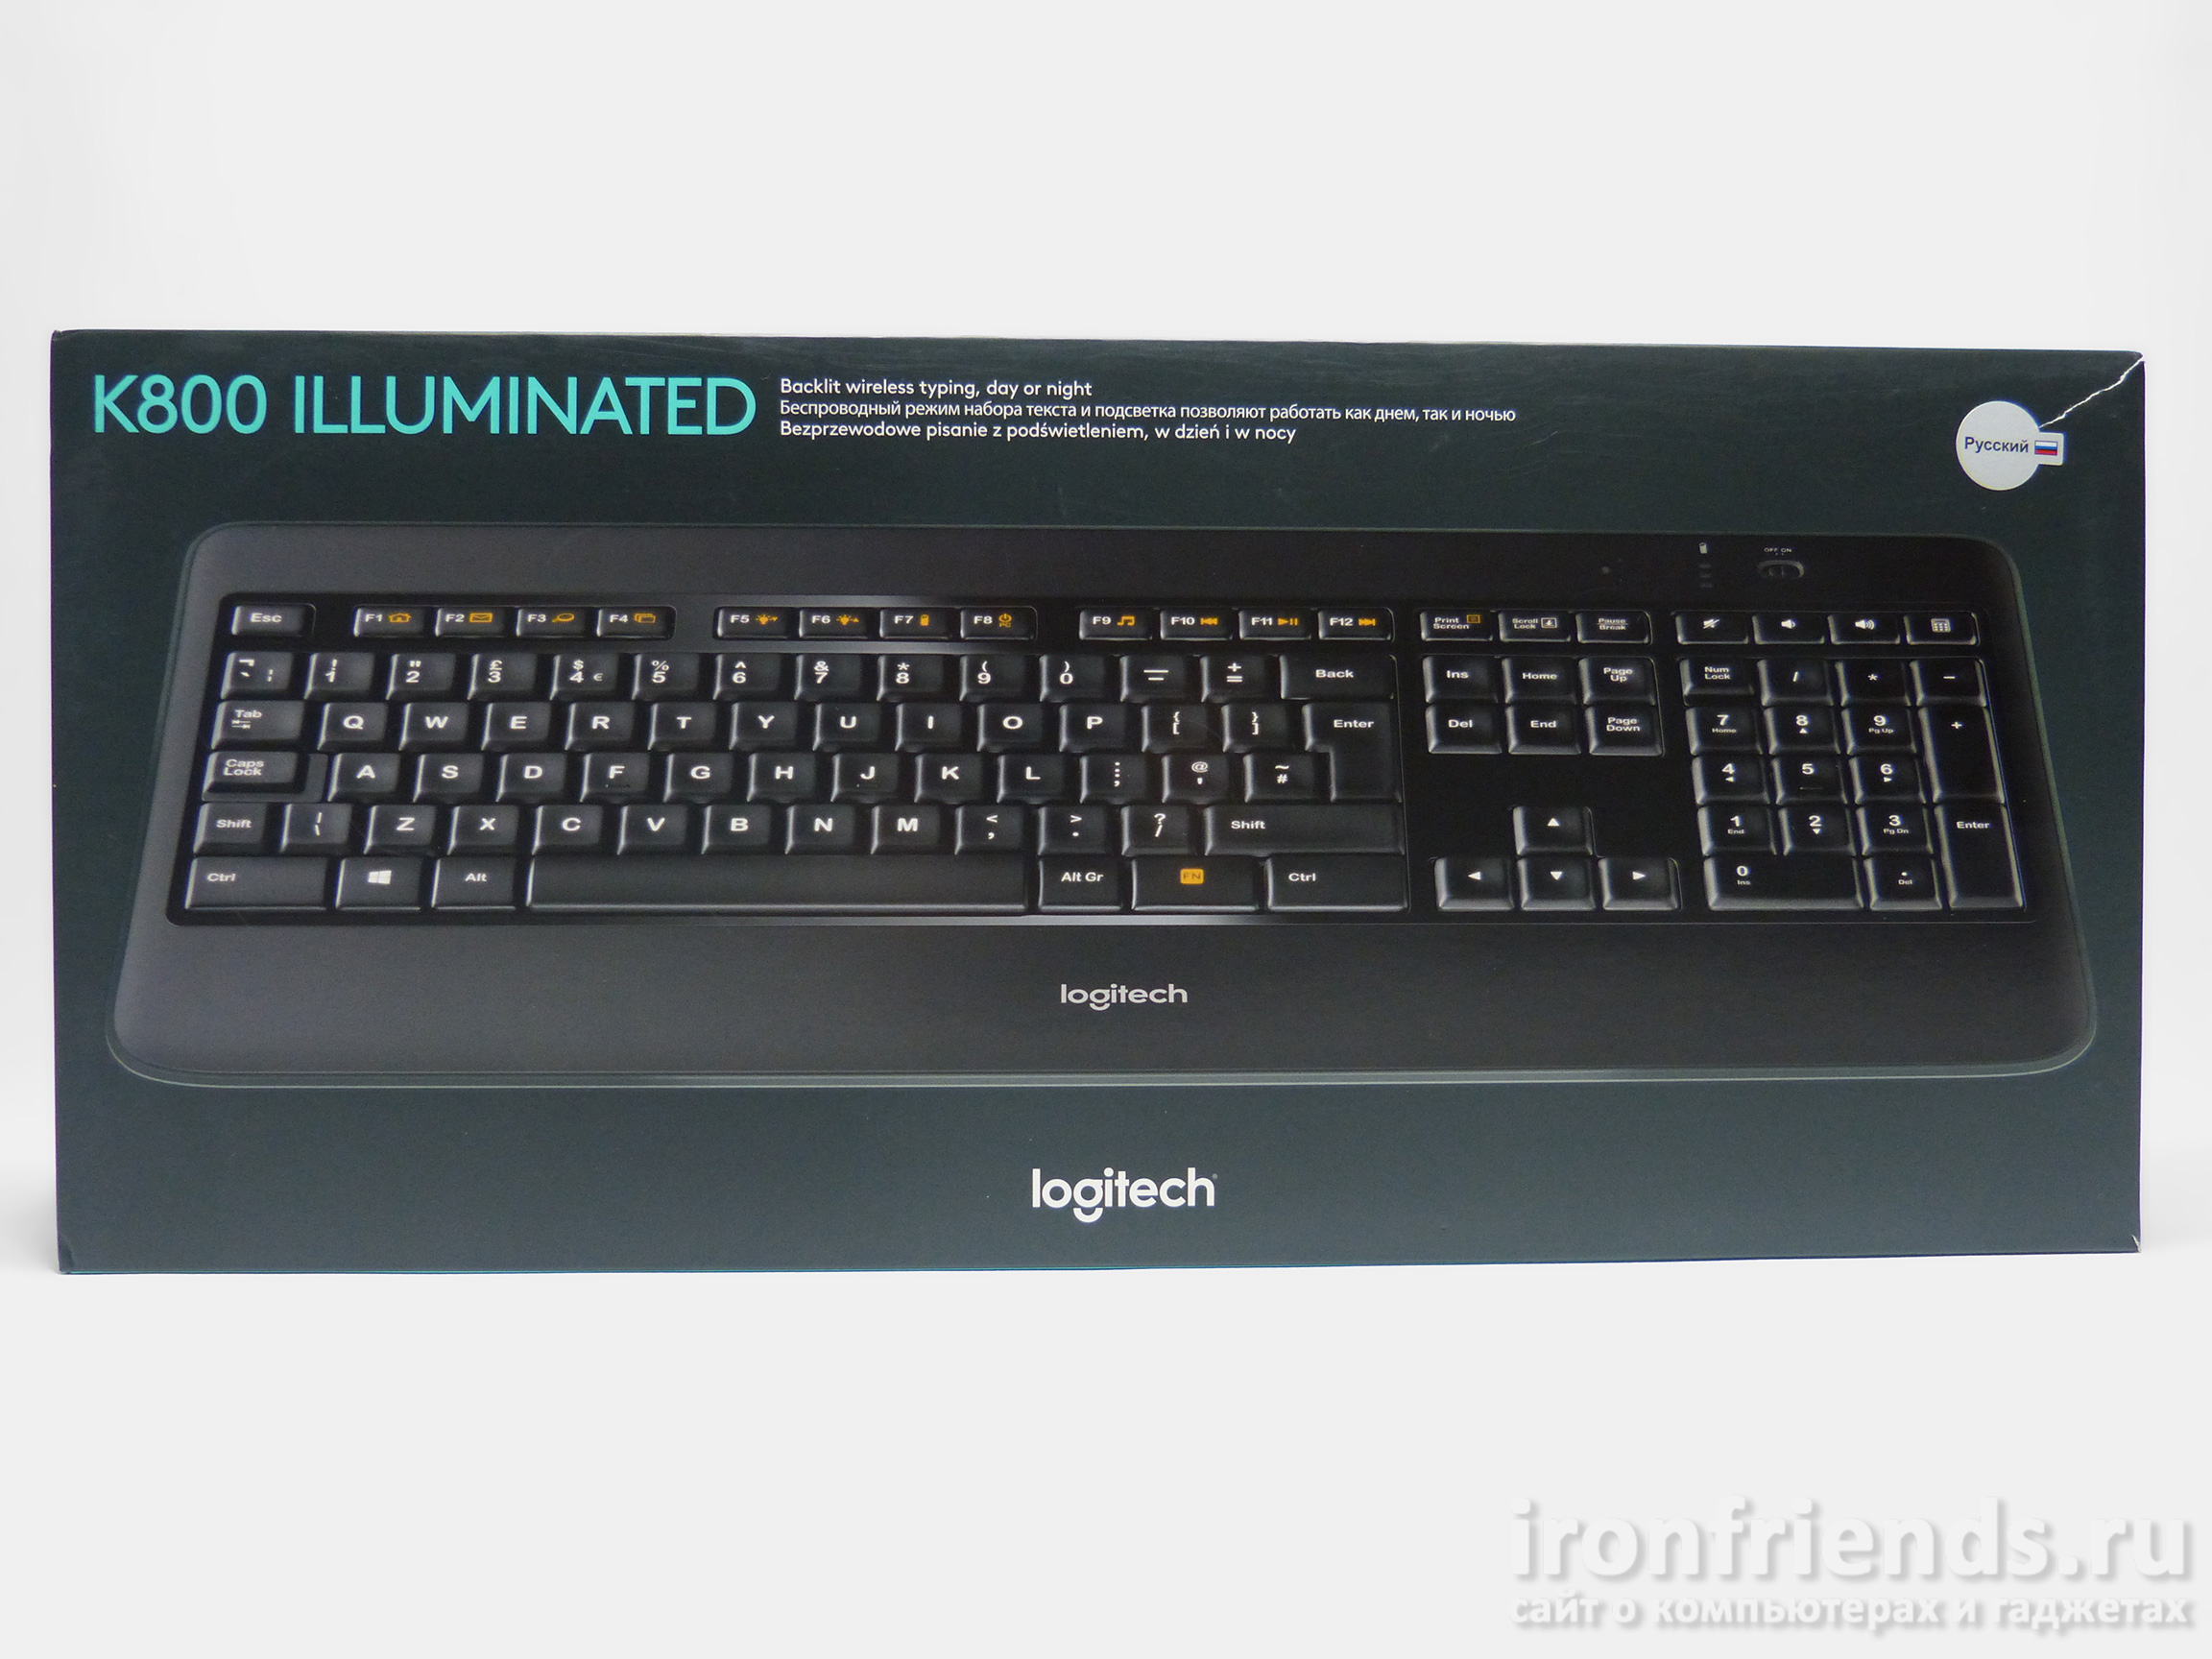 Упаковка Logitech K800 illuminated